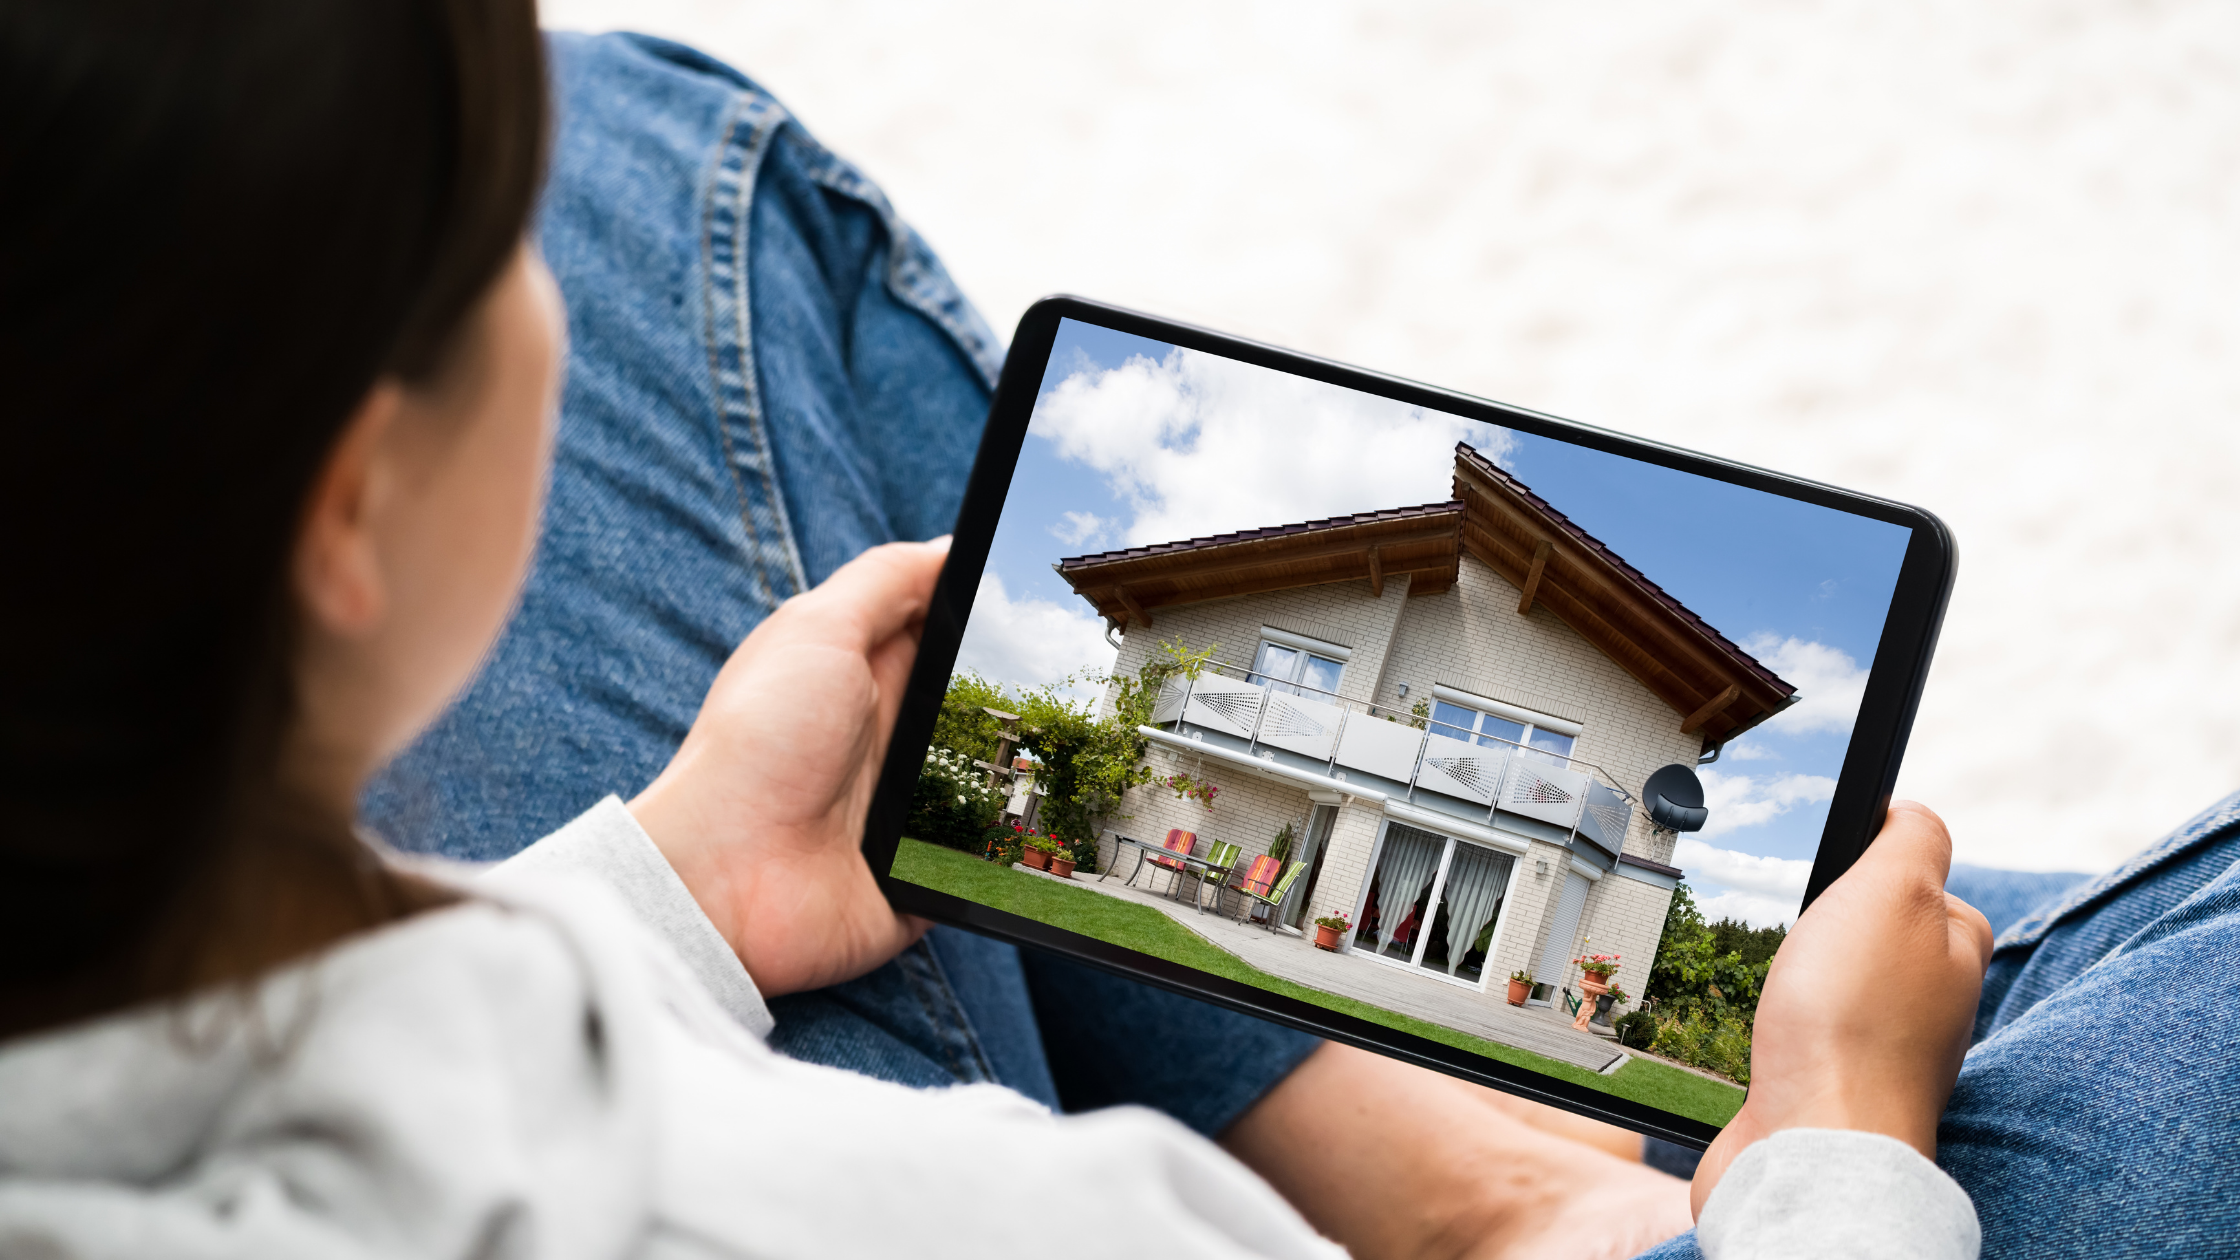 Marketing matters when selling a home in New Mexico